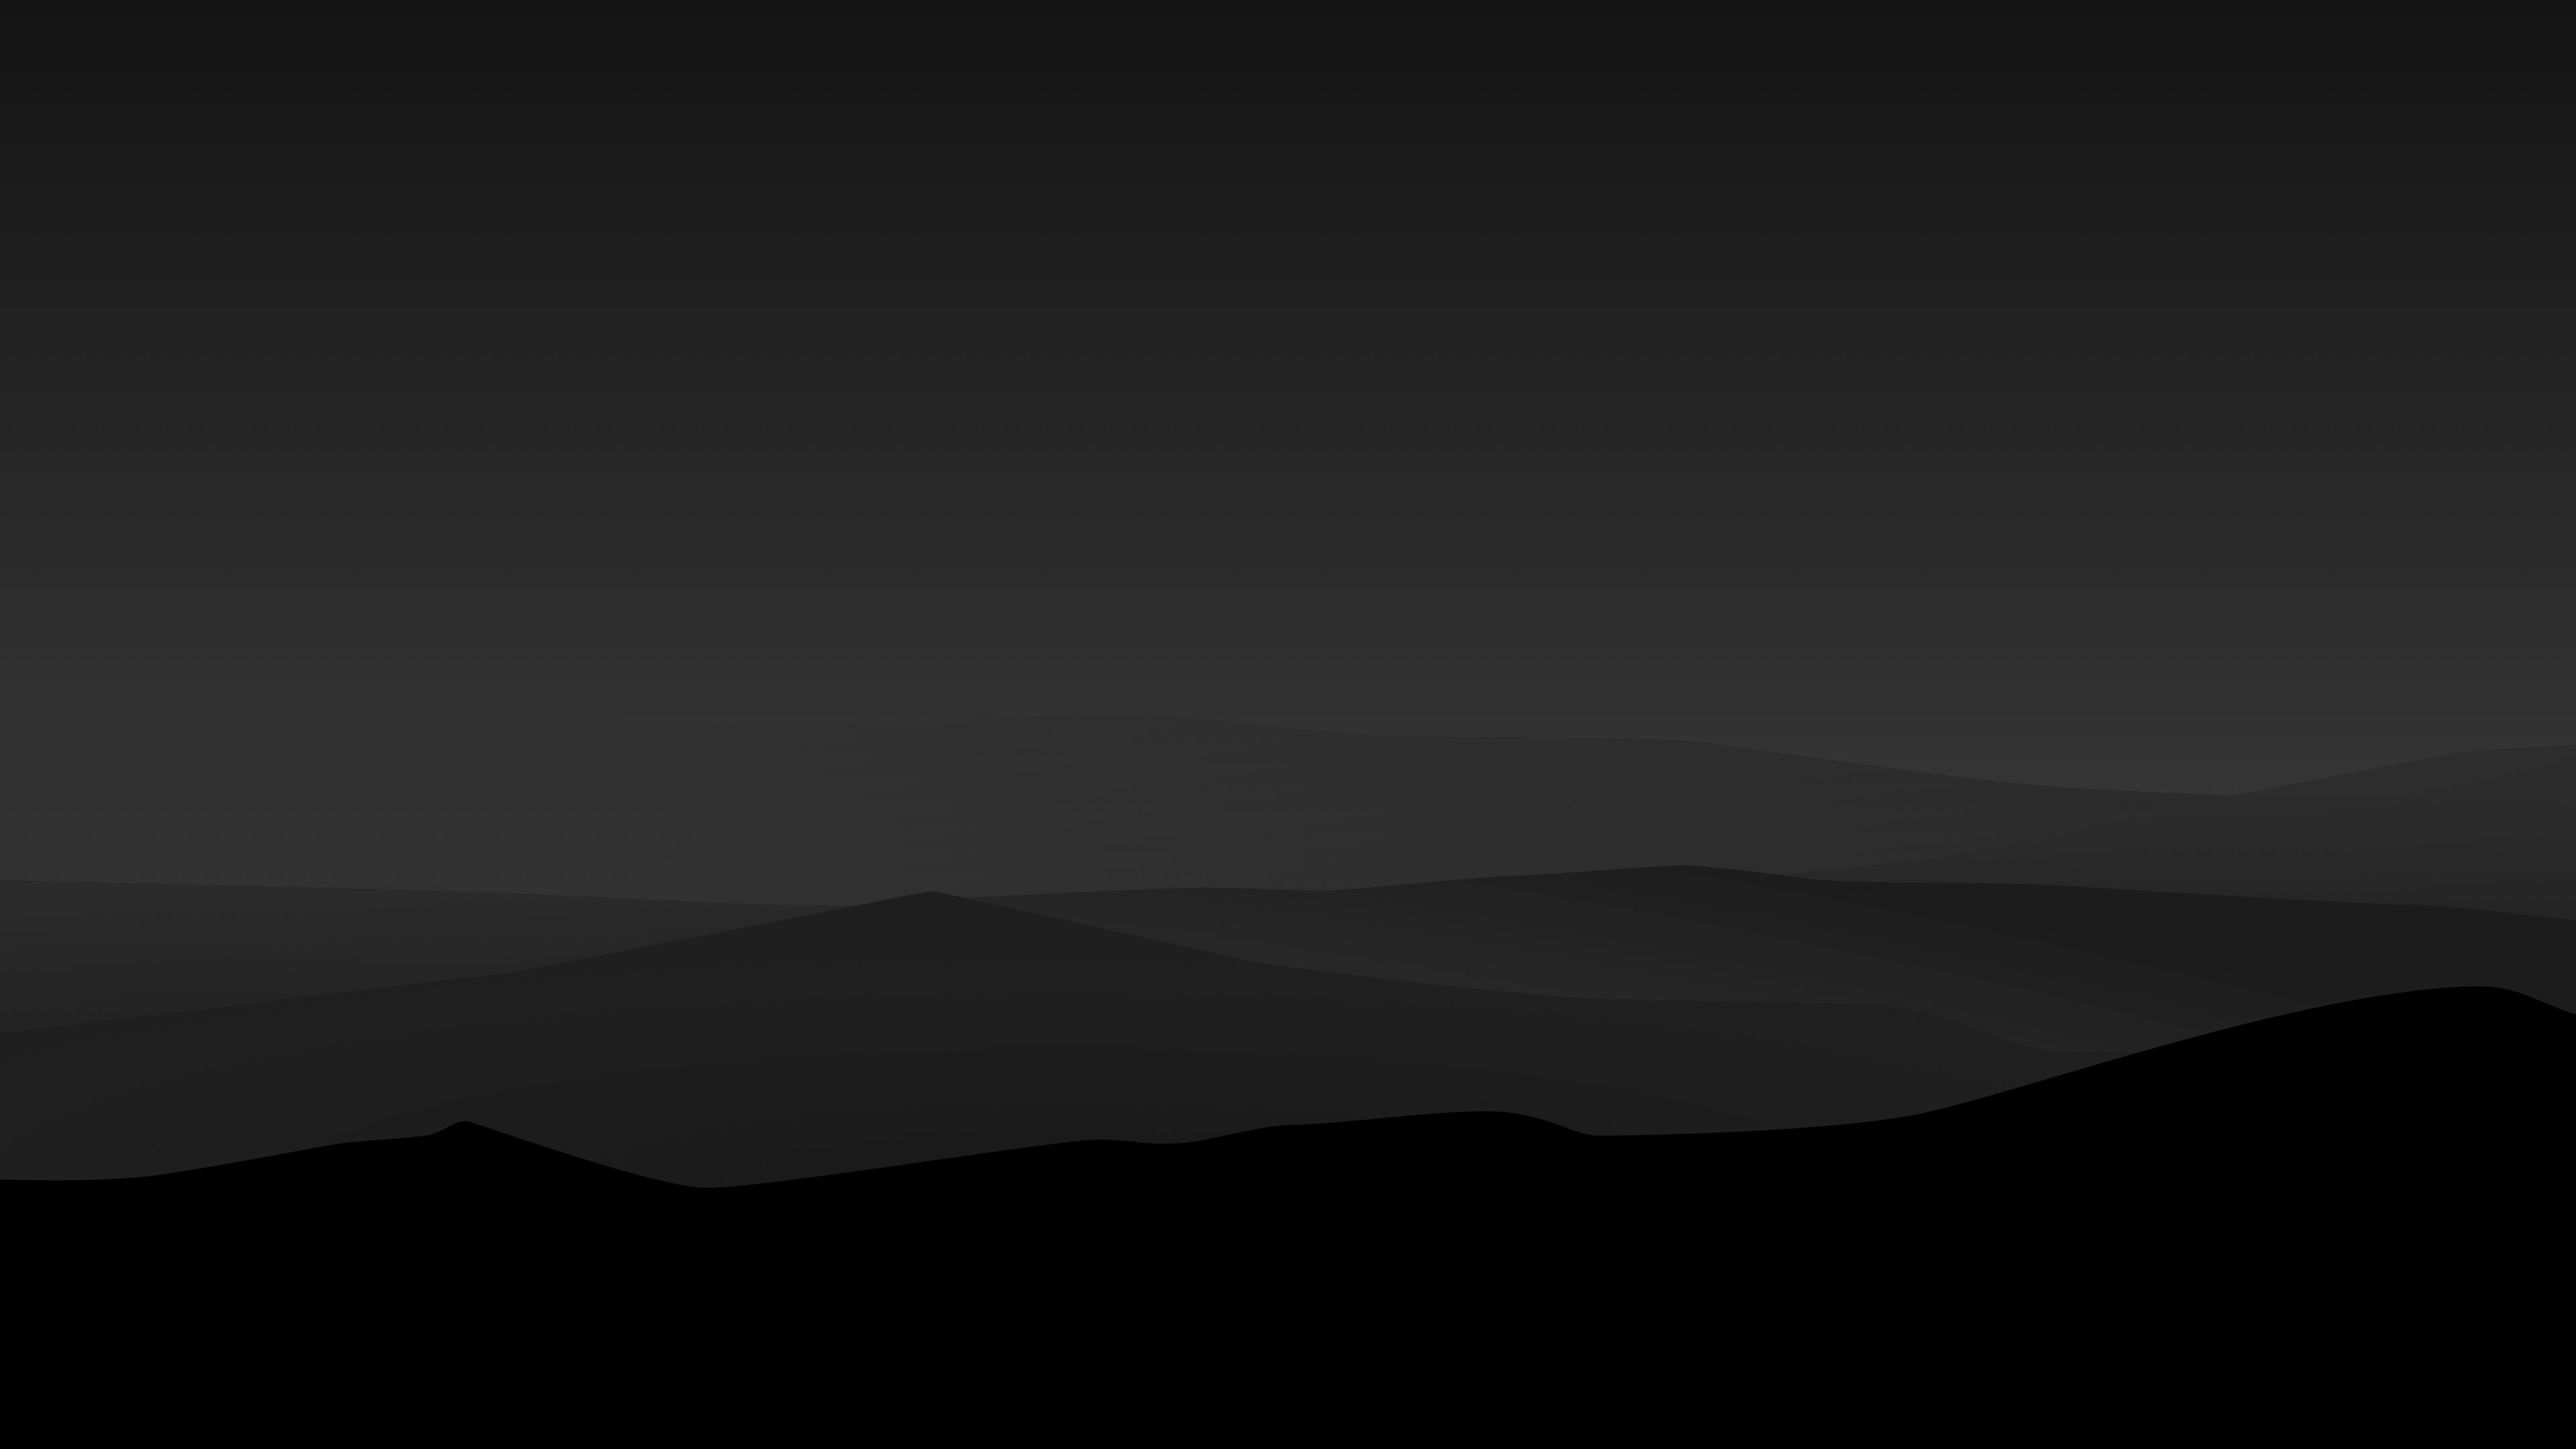 Dark Night Mountains Minimalist 4k simple background wallpapers 3840x2160